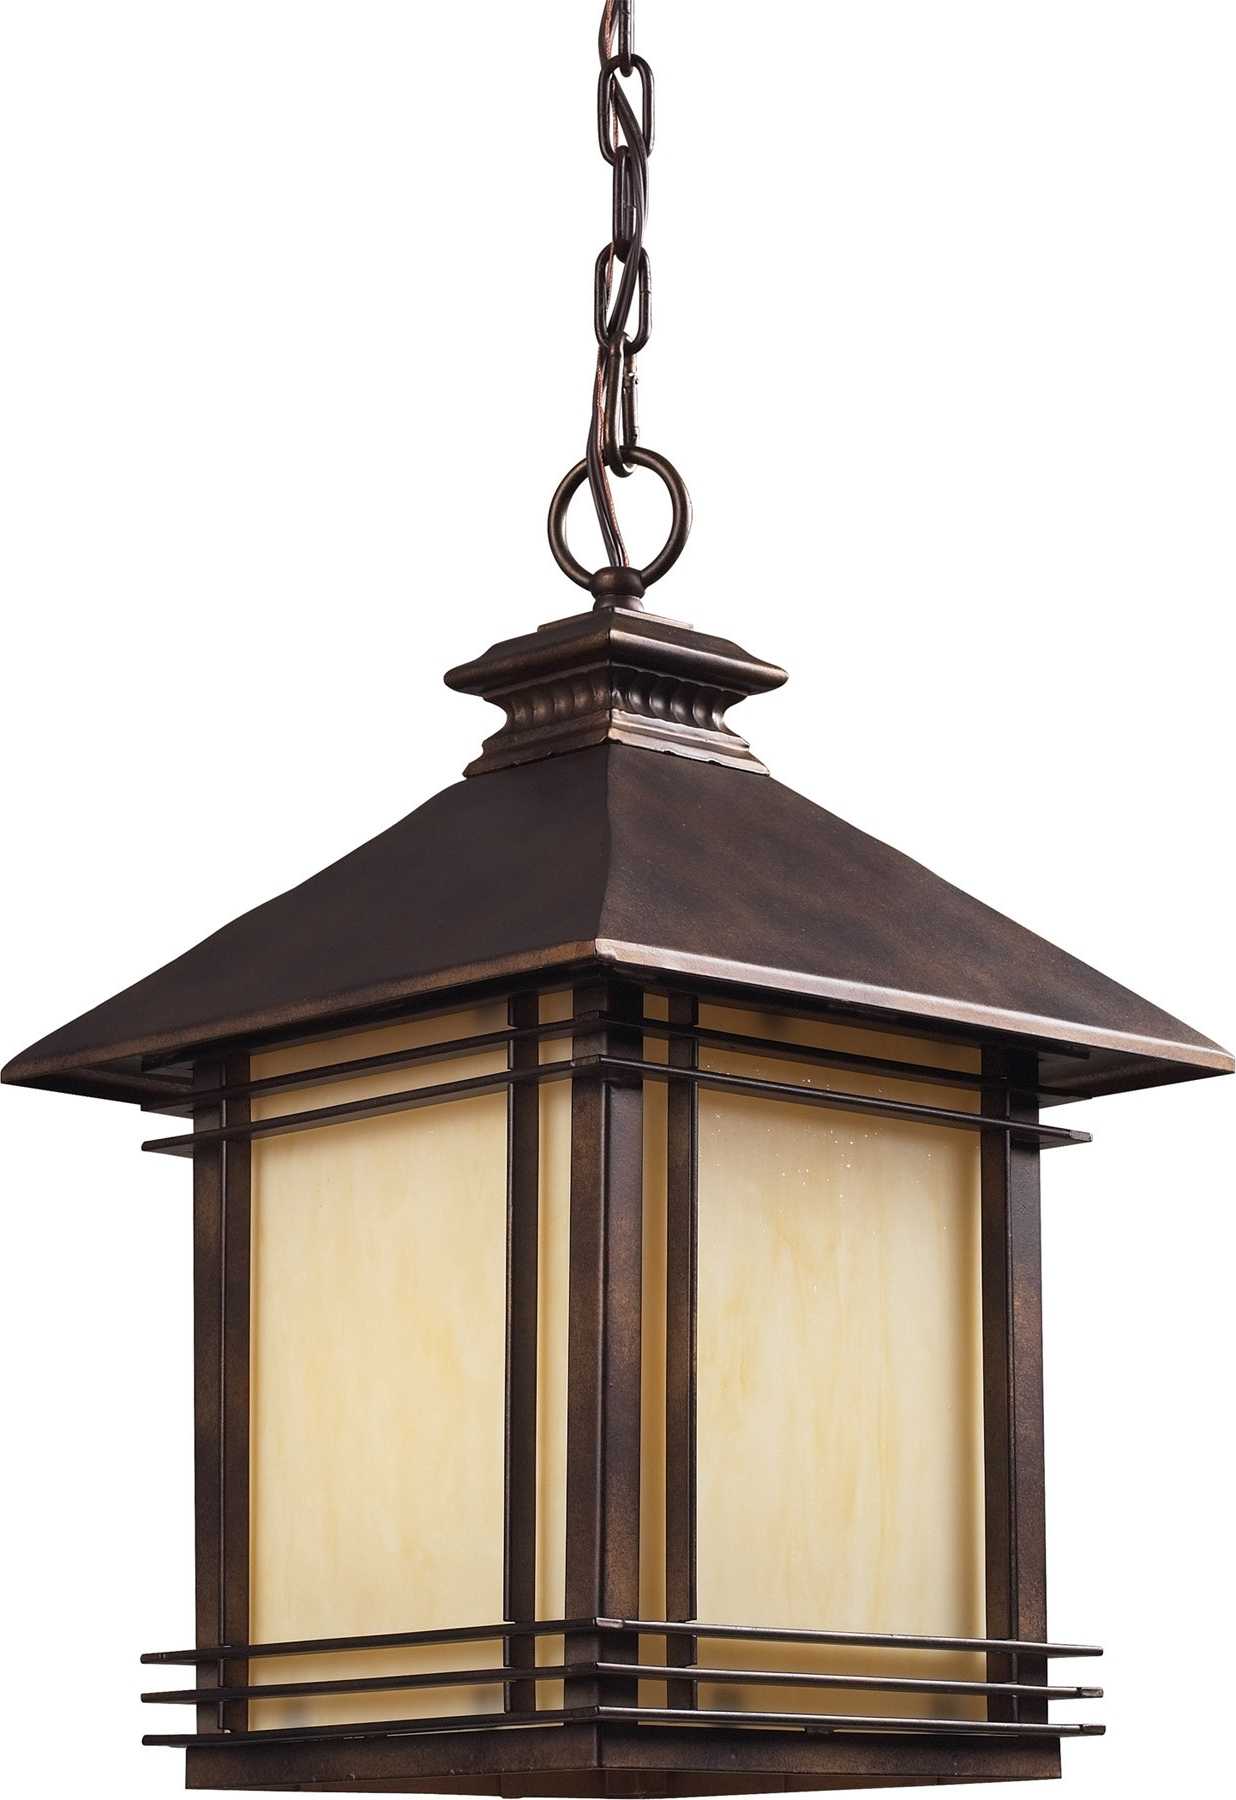 Solar Patio Lanterns Best Of Battery Operated Outdoor Hanging Lights Pertaining To Recent Outdoor Battery Lanterns For Patio (View 12 of 20)